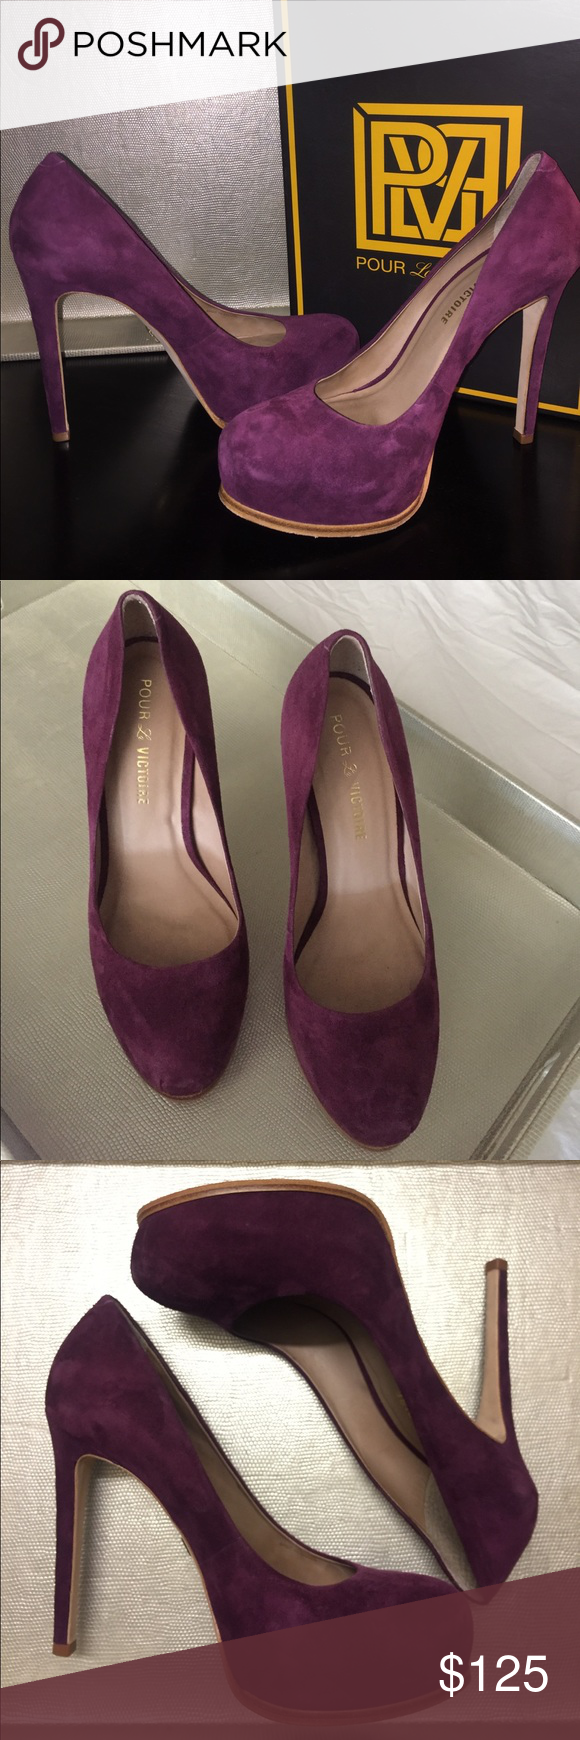 """Pour la Victoire Pumps Pour la Victoire """"Irina"""" Pumps in burgundy Kid Suede. Suede upper, with leather lining and sole. EXCELLENT condition, worn once. A concealed platform maintains the clean aesthetic of an ultra-chic pump with a skinny wrapped heel. - Approximate heel height: 4-3/4"""" with 1-1/4"""" platform (comparable to a 3 1/2"""" heel). Pour la Victoire Shoes Heels"""